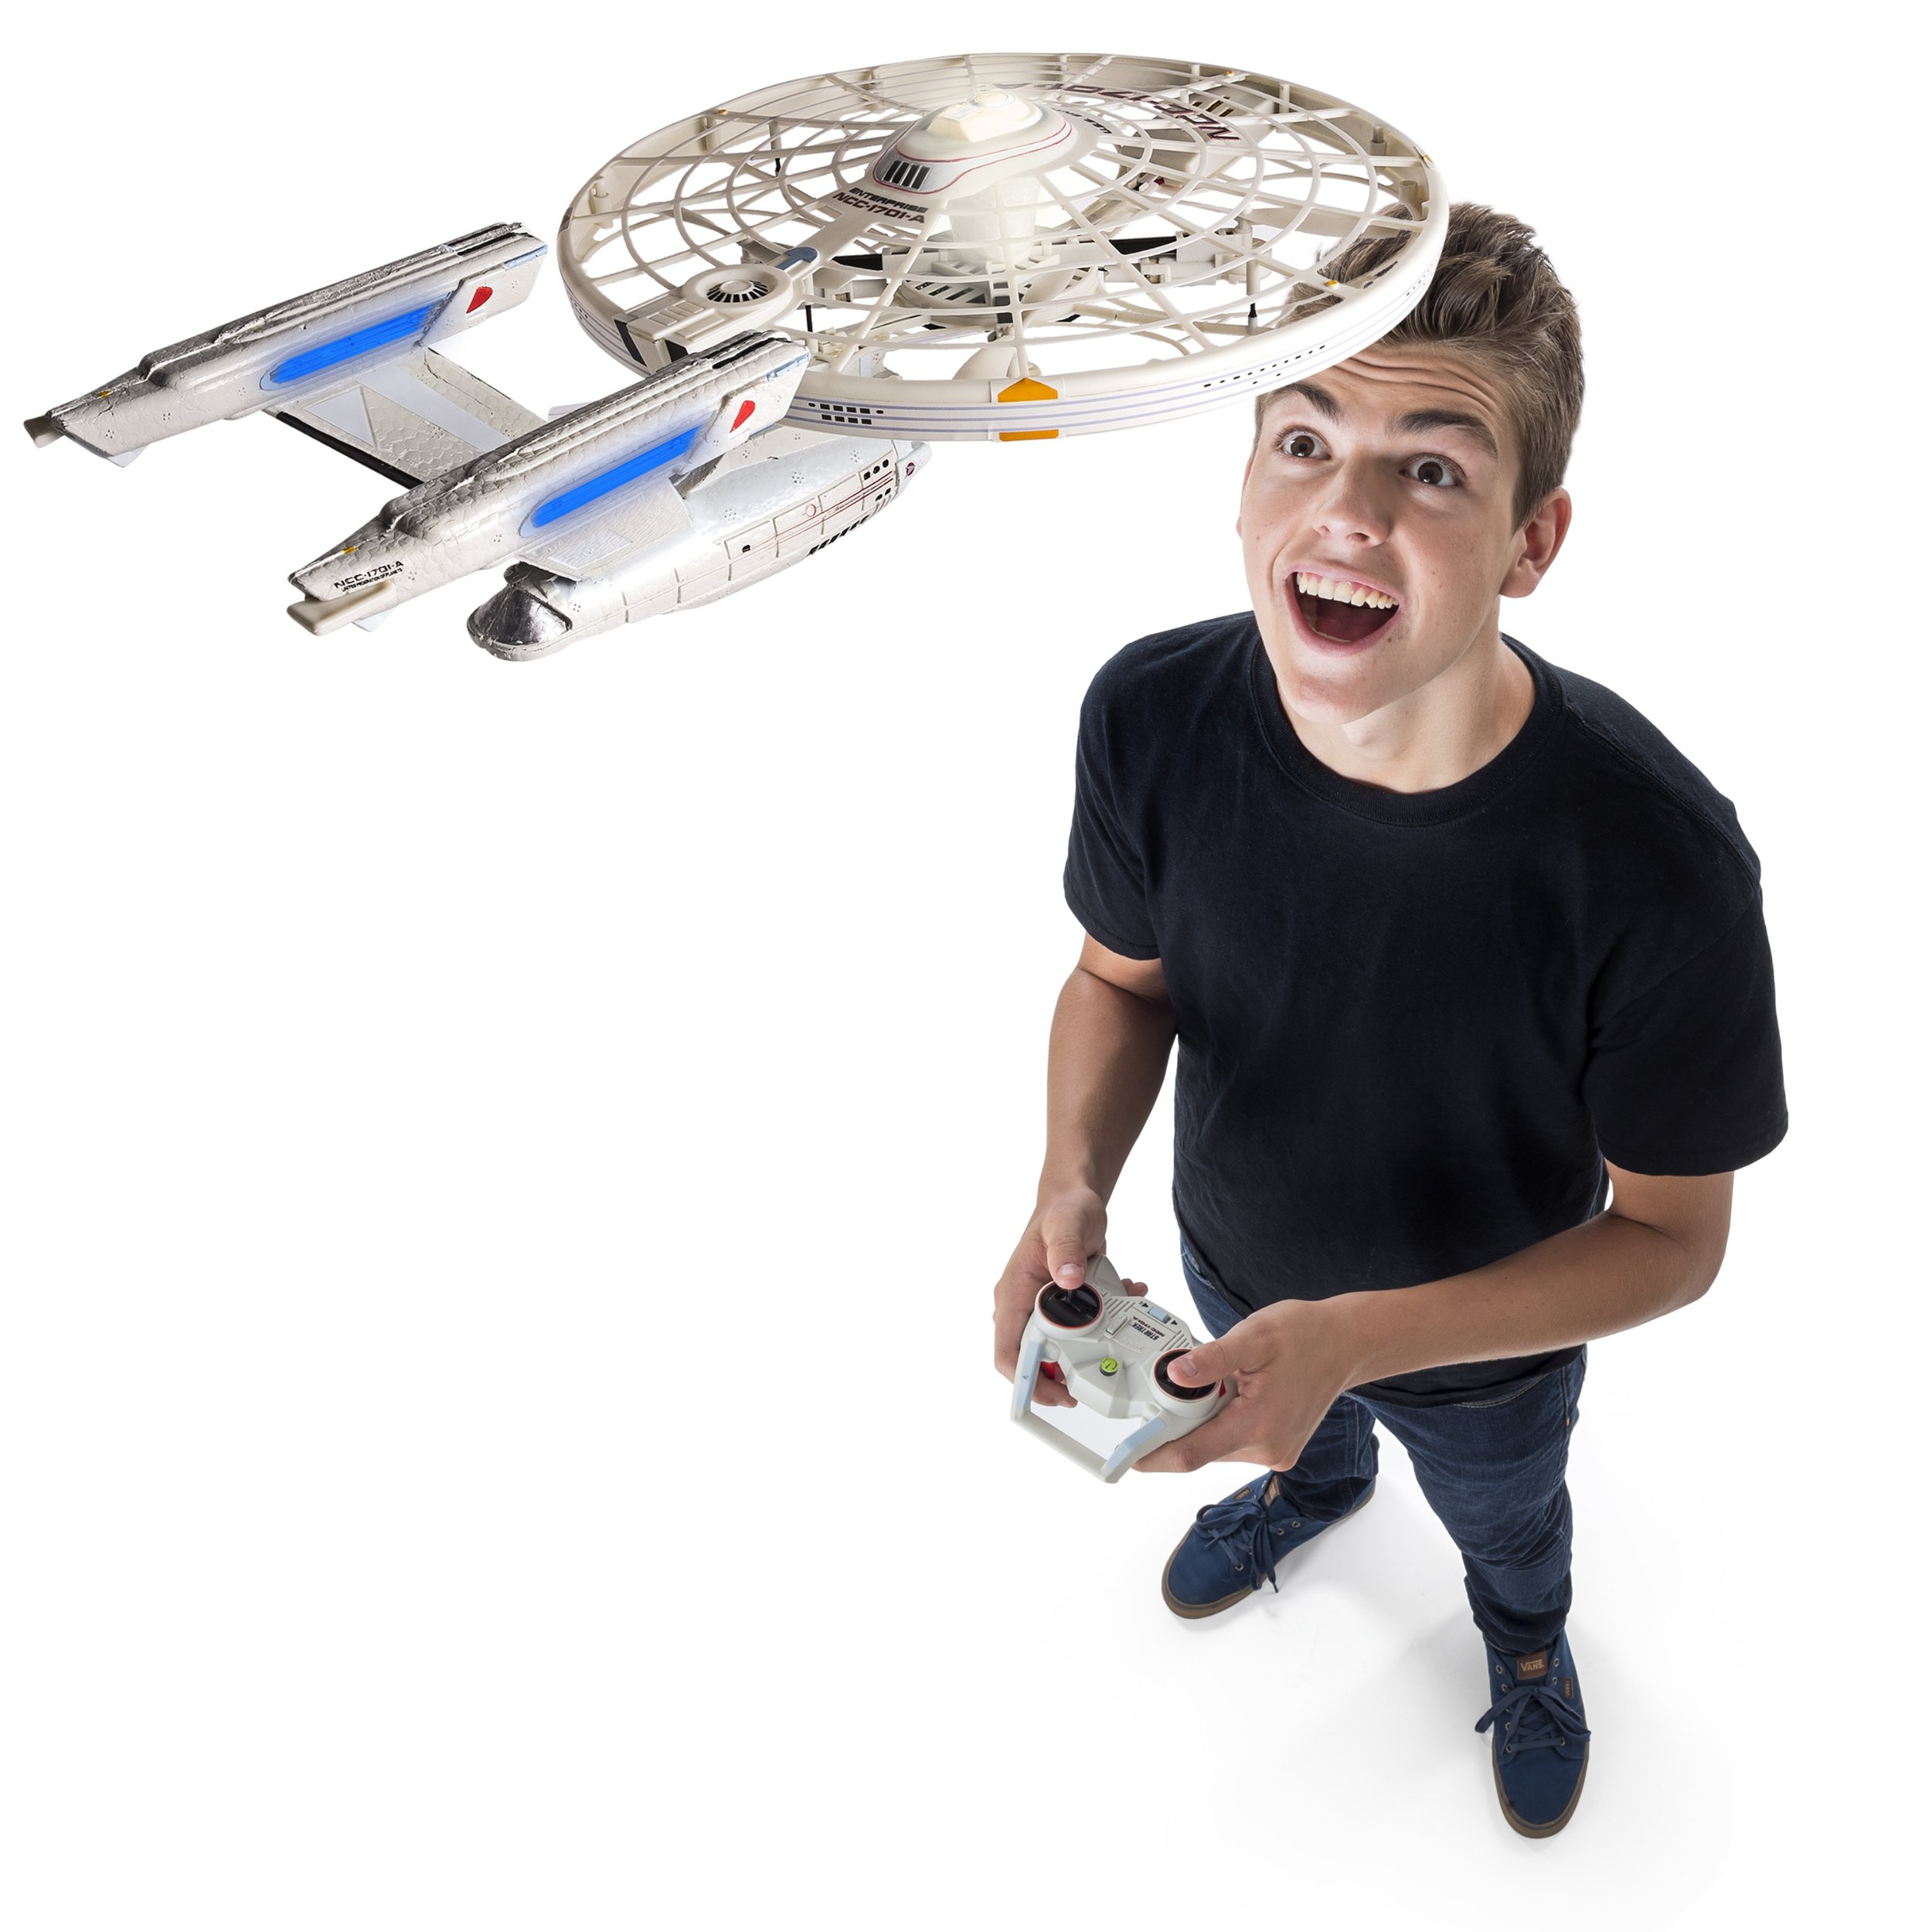 Air Hogs, Star Trek U.S.S Enterprise NCC-1701-A, Remote Control Drone with Lights and Sounds, 2.4 GHZ, 4 Channel by Air Hogs (Image #3)